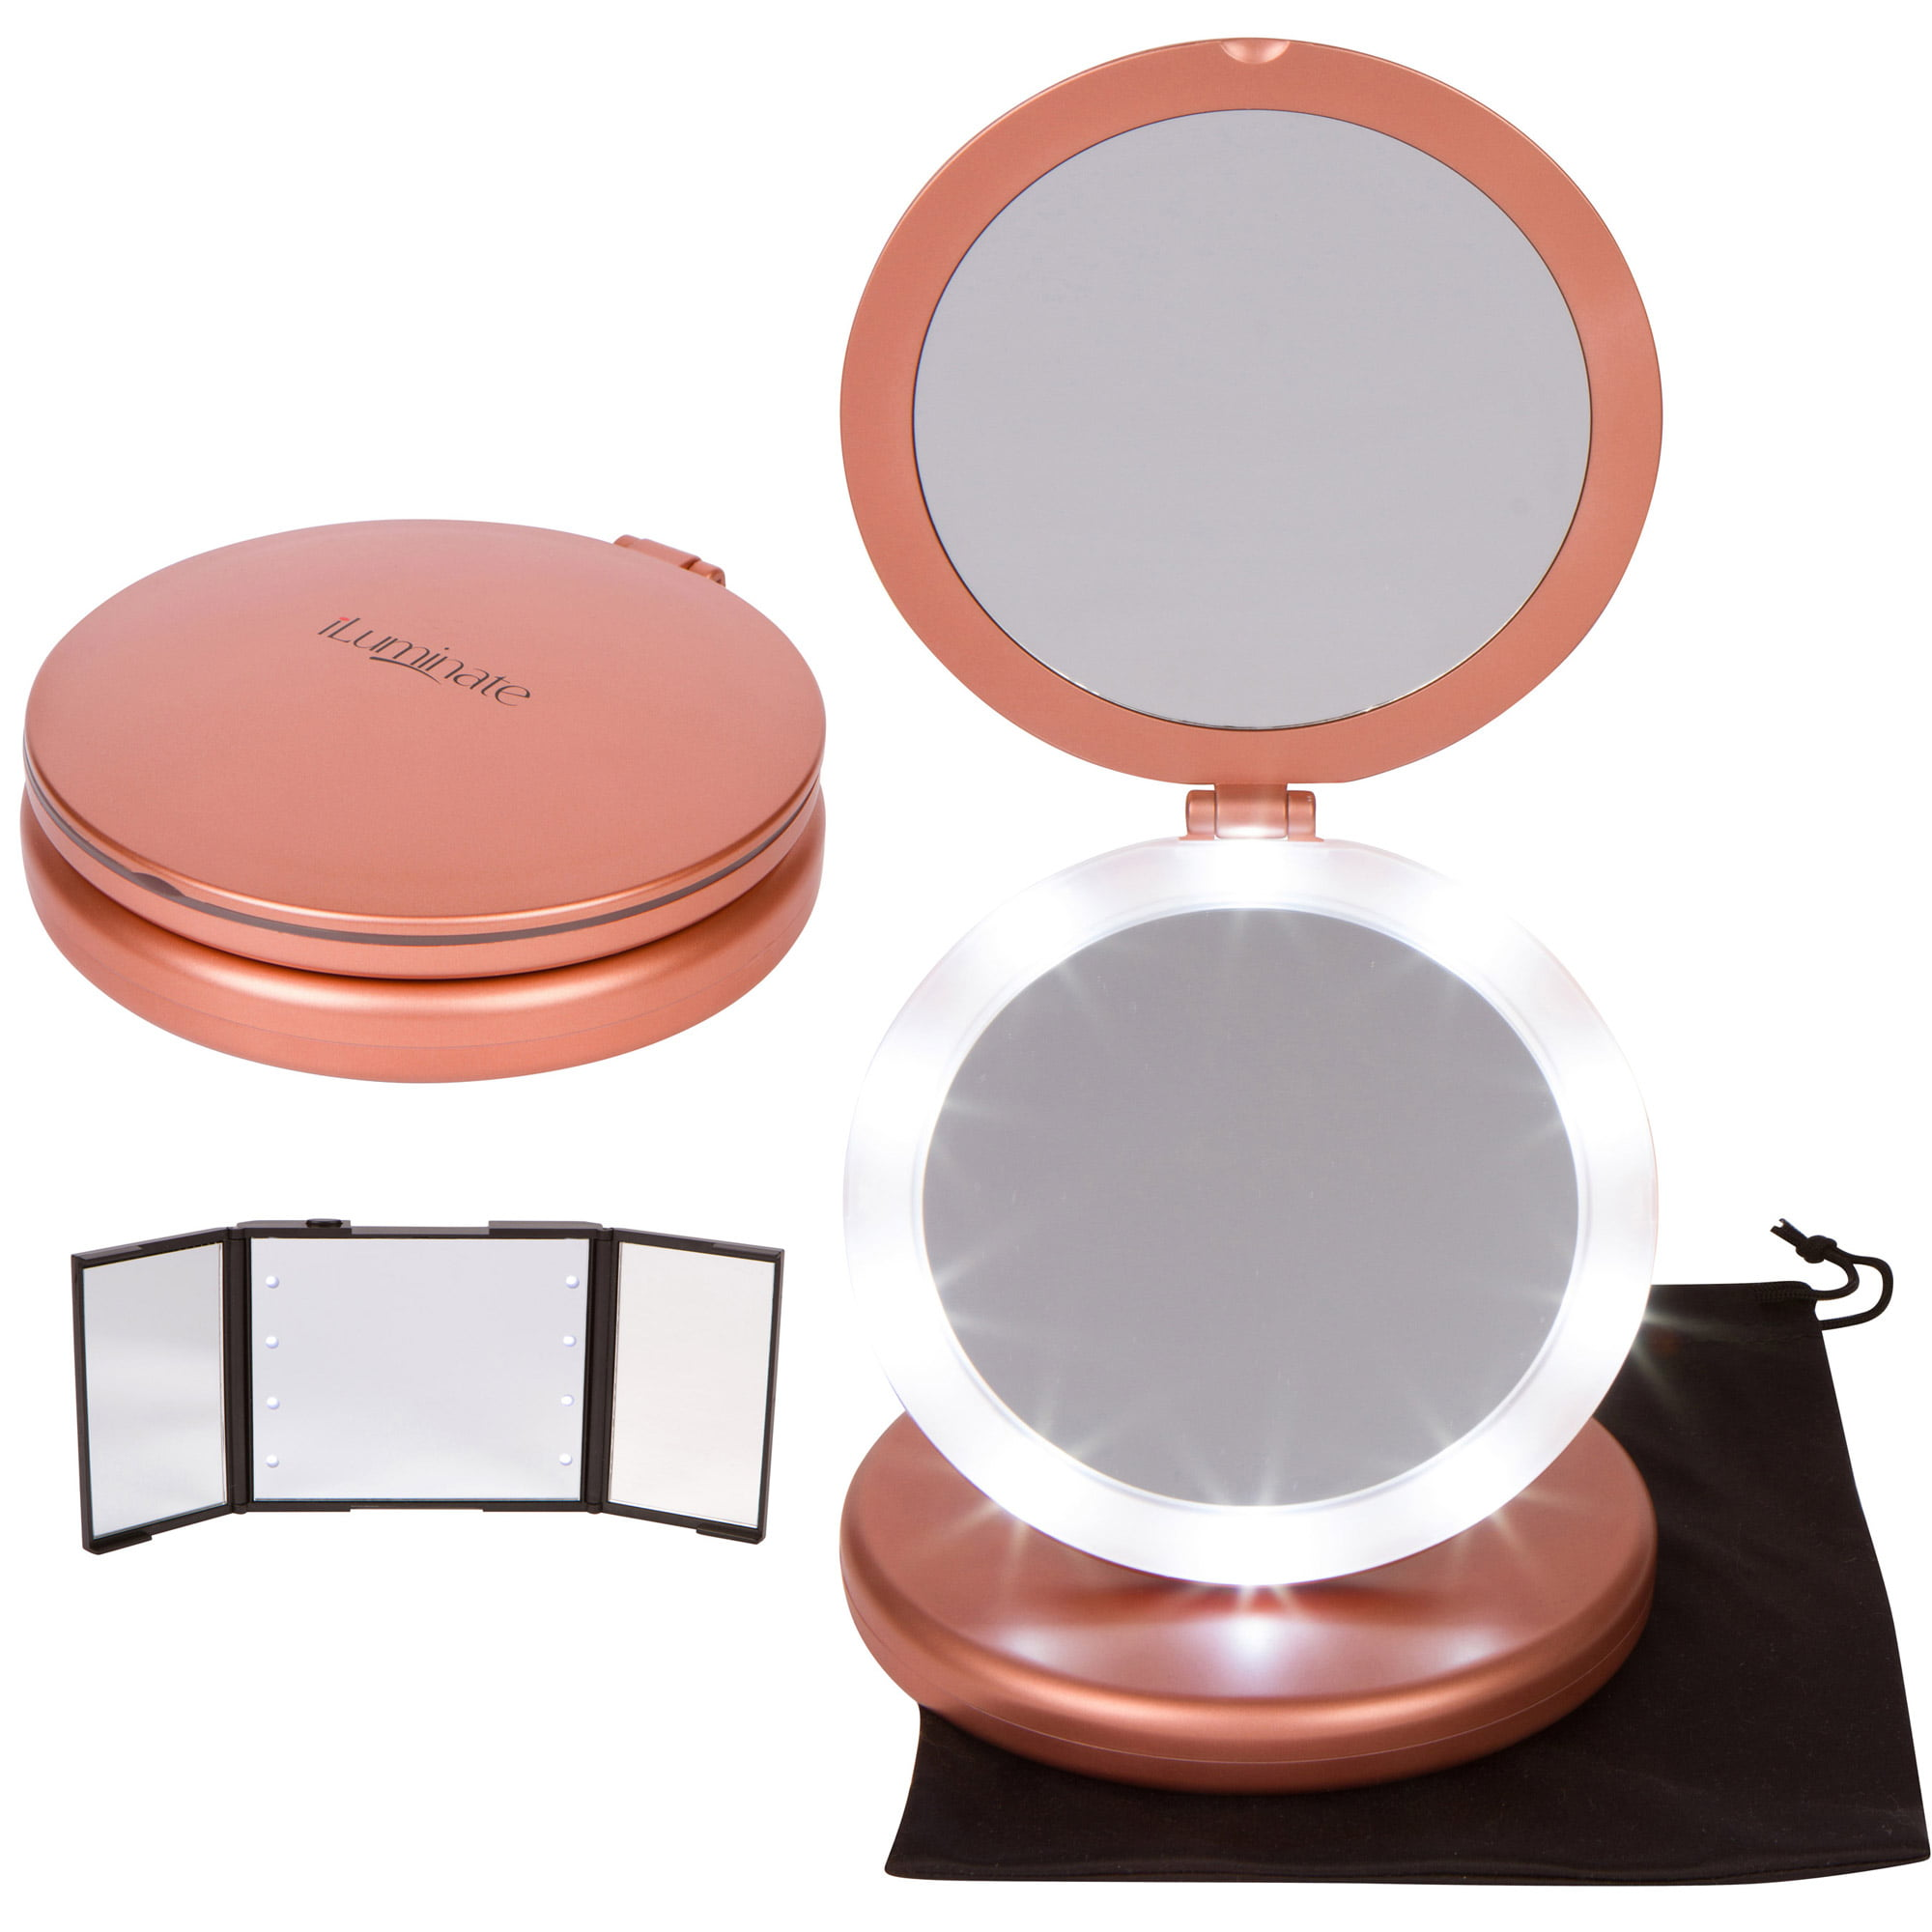 mounted high wall light style led folding with bathroom economical vanity european product end lighting mirror makeup magnifying cosmetic detail